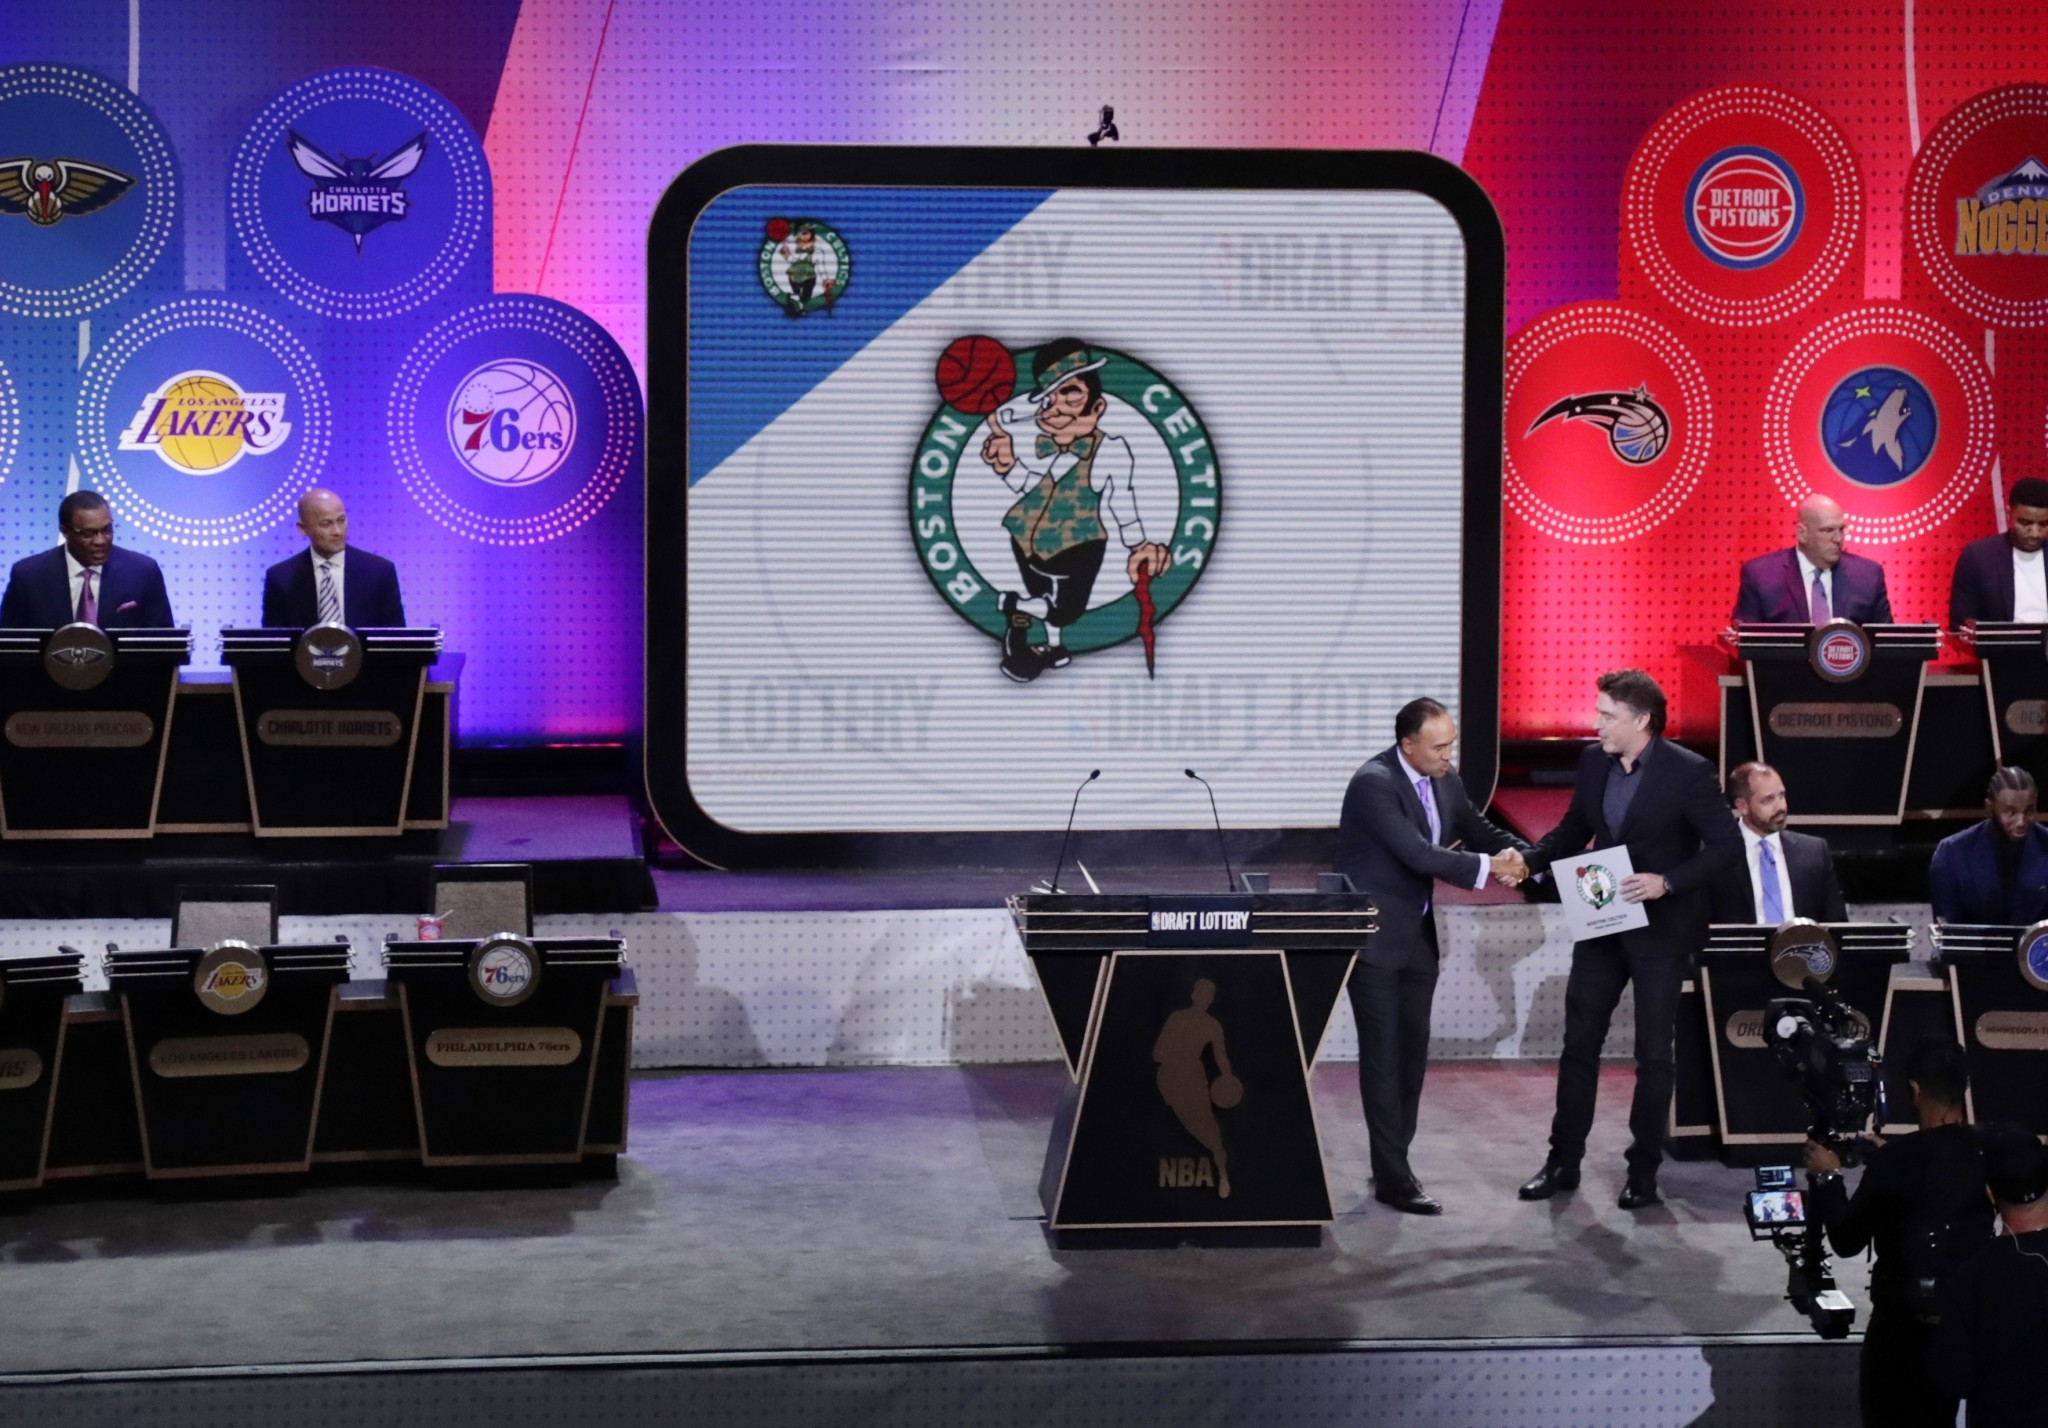 Inside the NBA's draft lottery drawing room